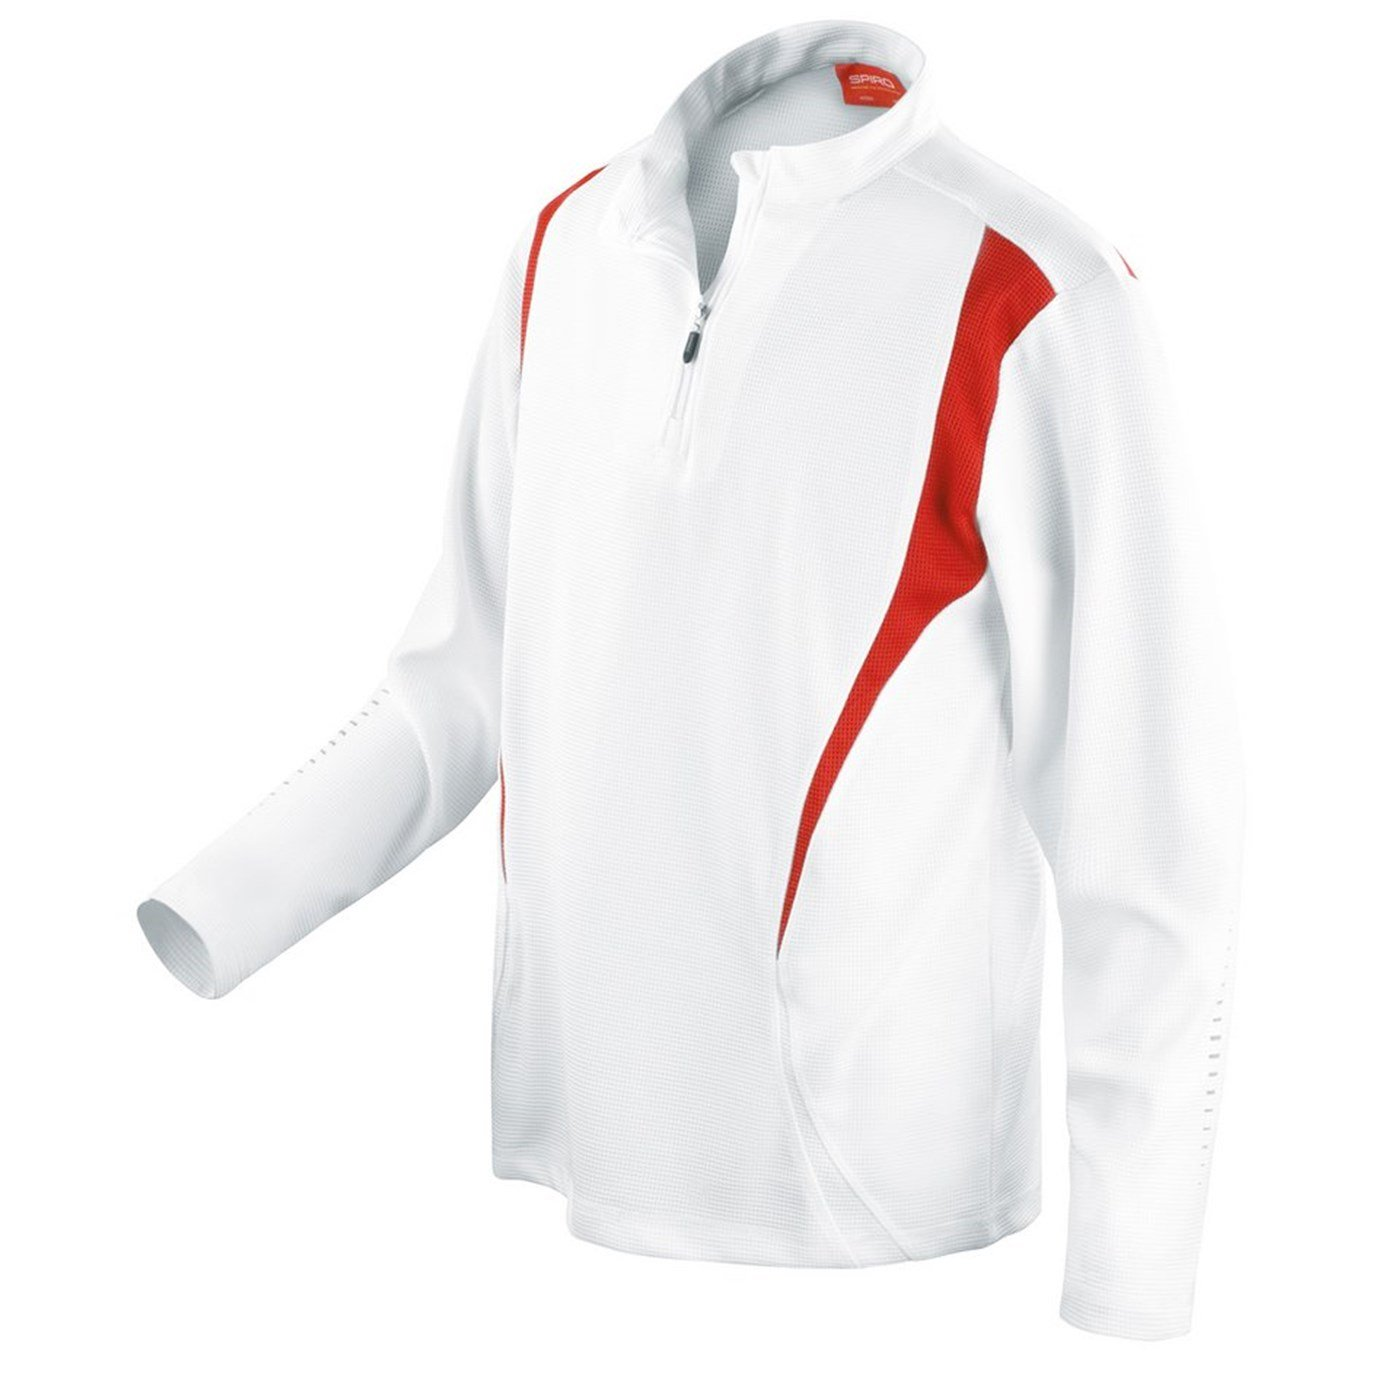 b6097dcc3 Spiro Adult s Cool Dry Fabric 1 4 Zip Trial Training Top S178X